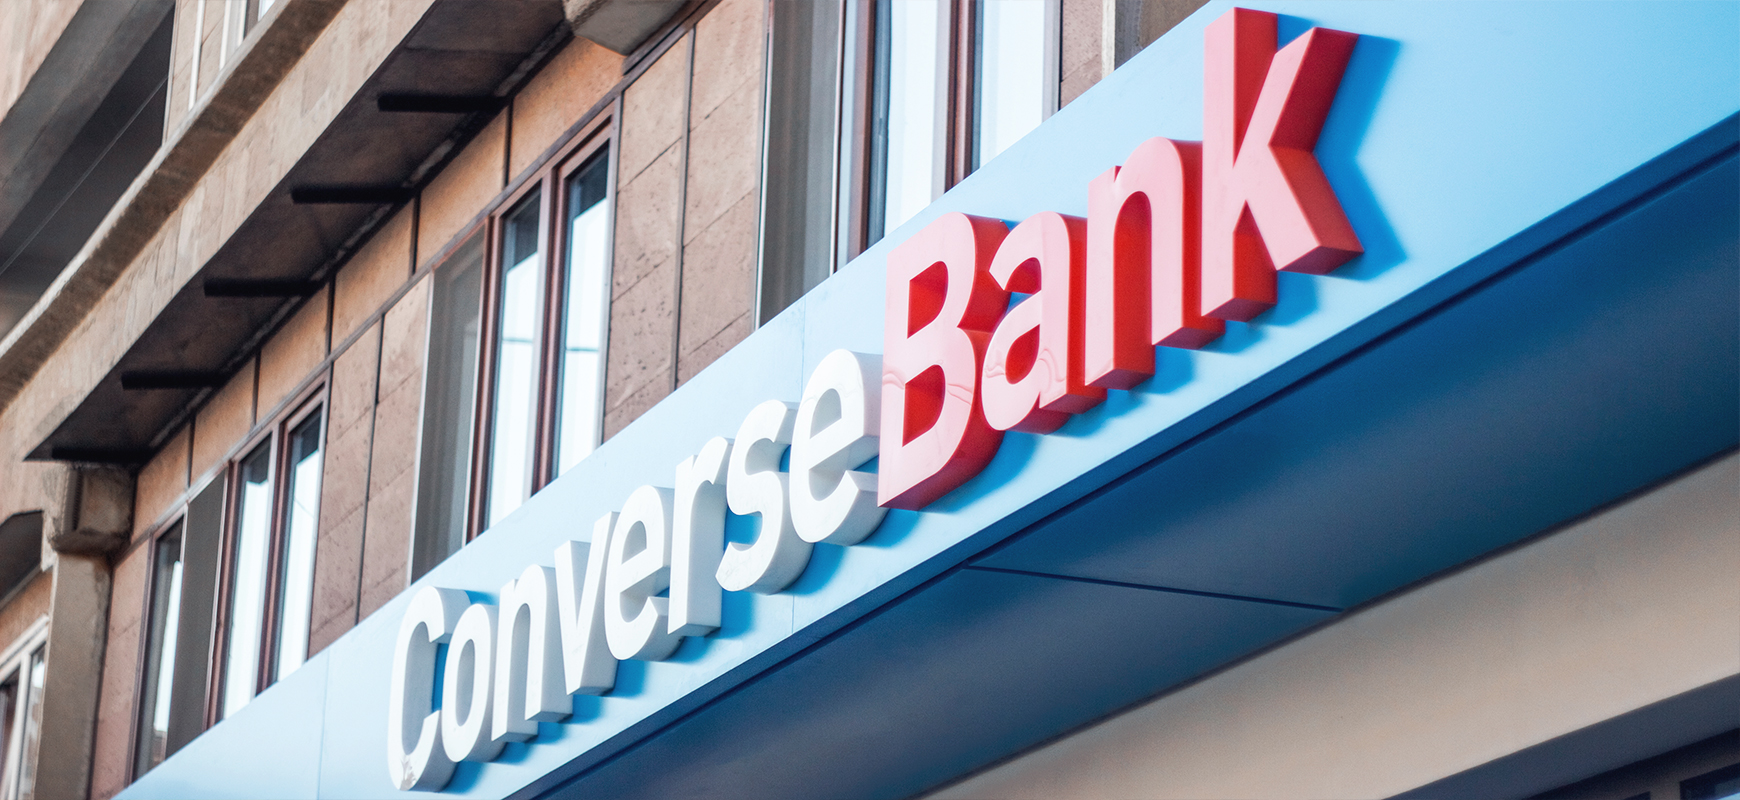 Converse Bank signage with brand name lighted letters made of aluminum and acrylic